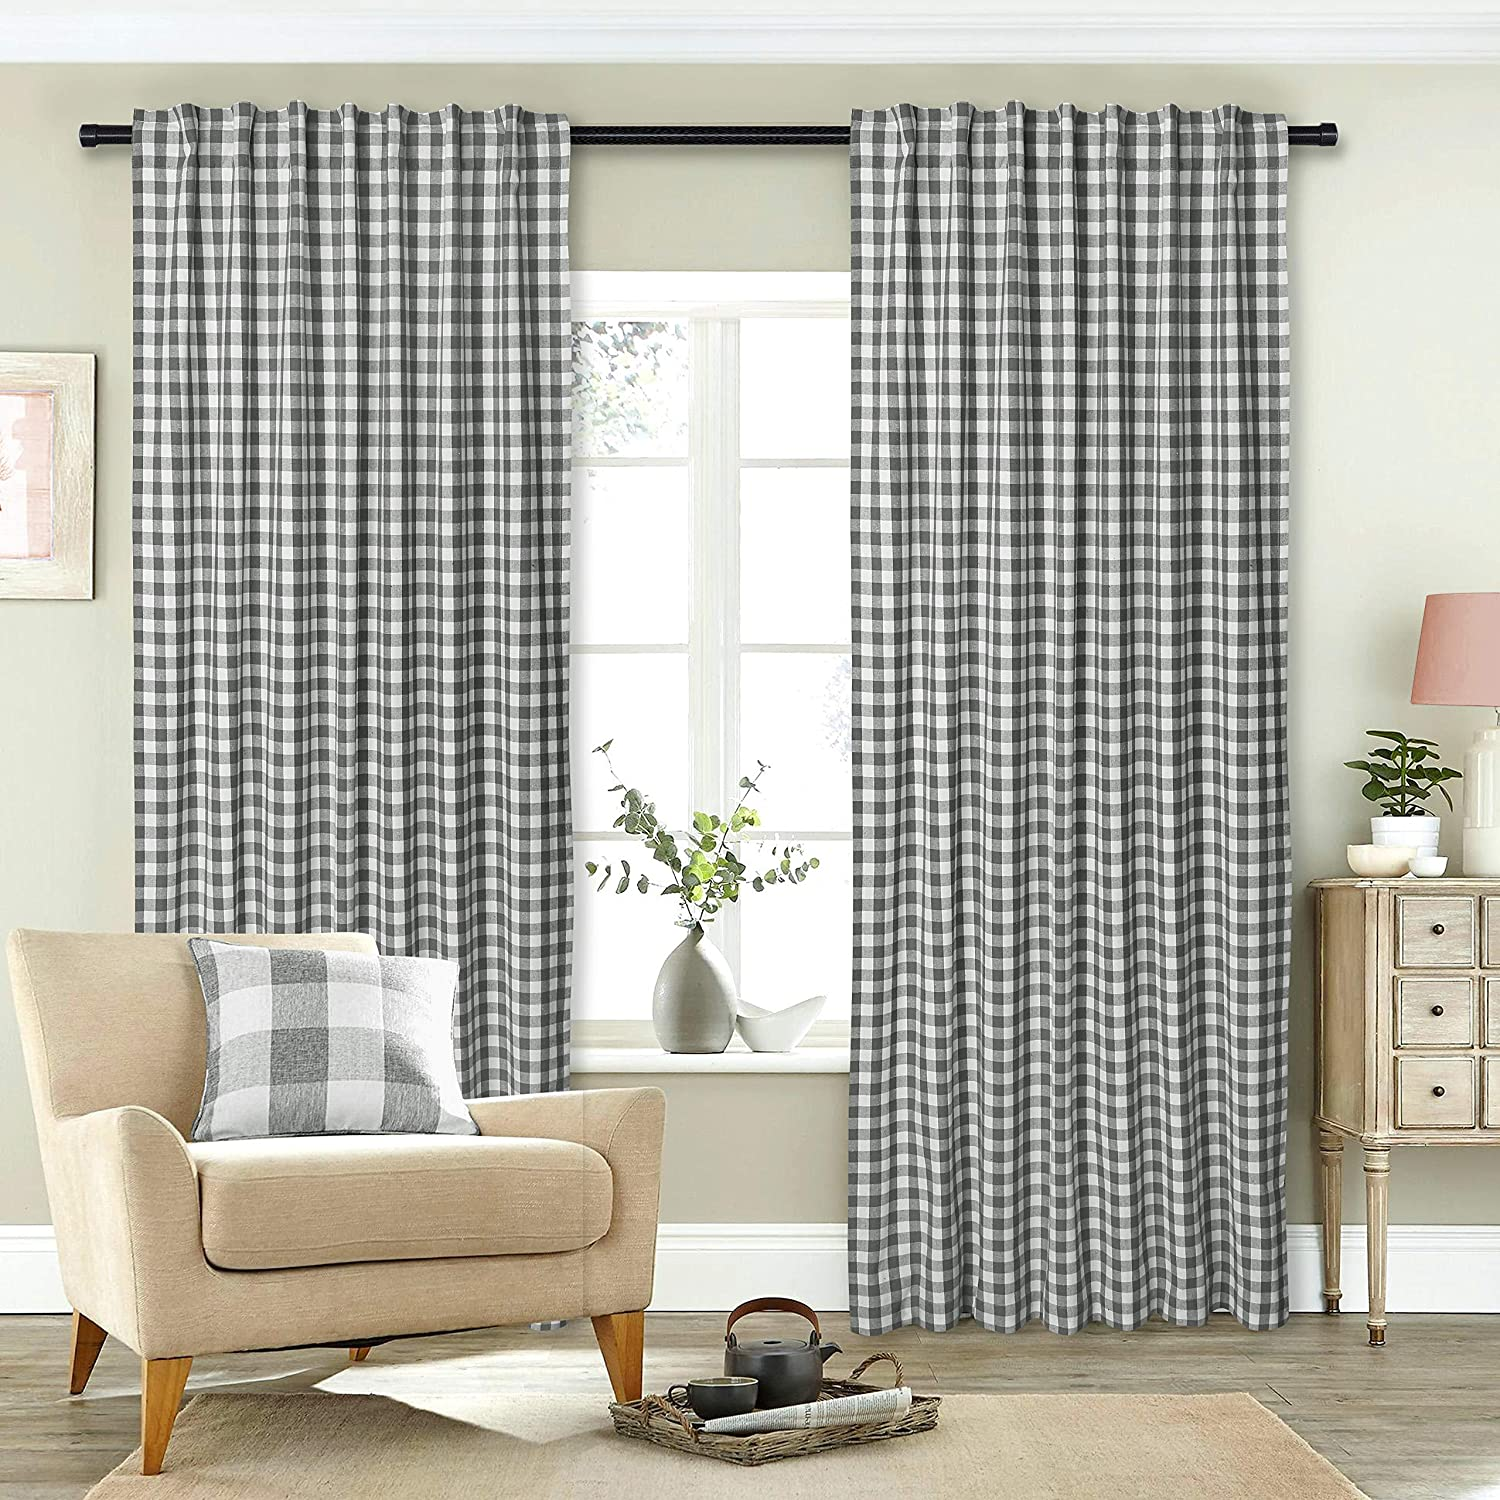 Gingham Check Window Curtain Panel, 100% Cotton, Charcoal/White, Cotton Curtains, 2 Panels Curtain, Tab Top Curtains, 50x108 Inches, Set of 2